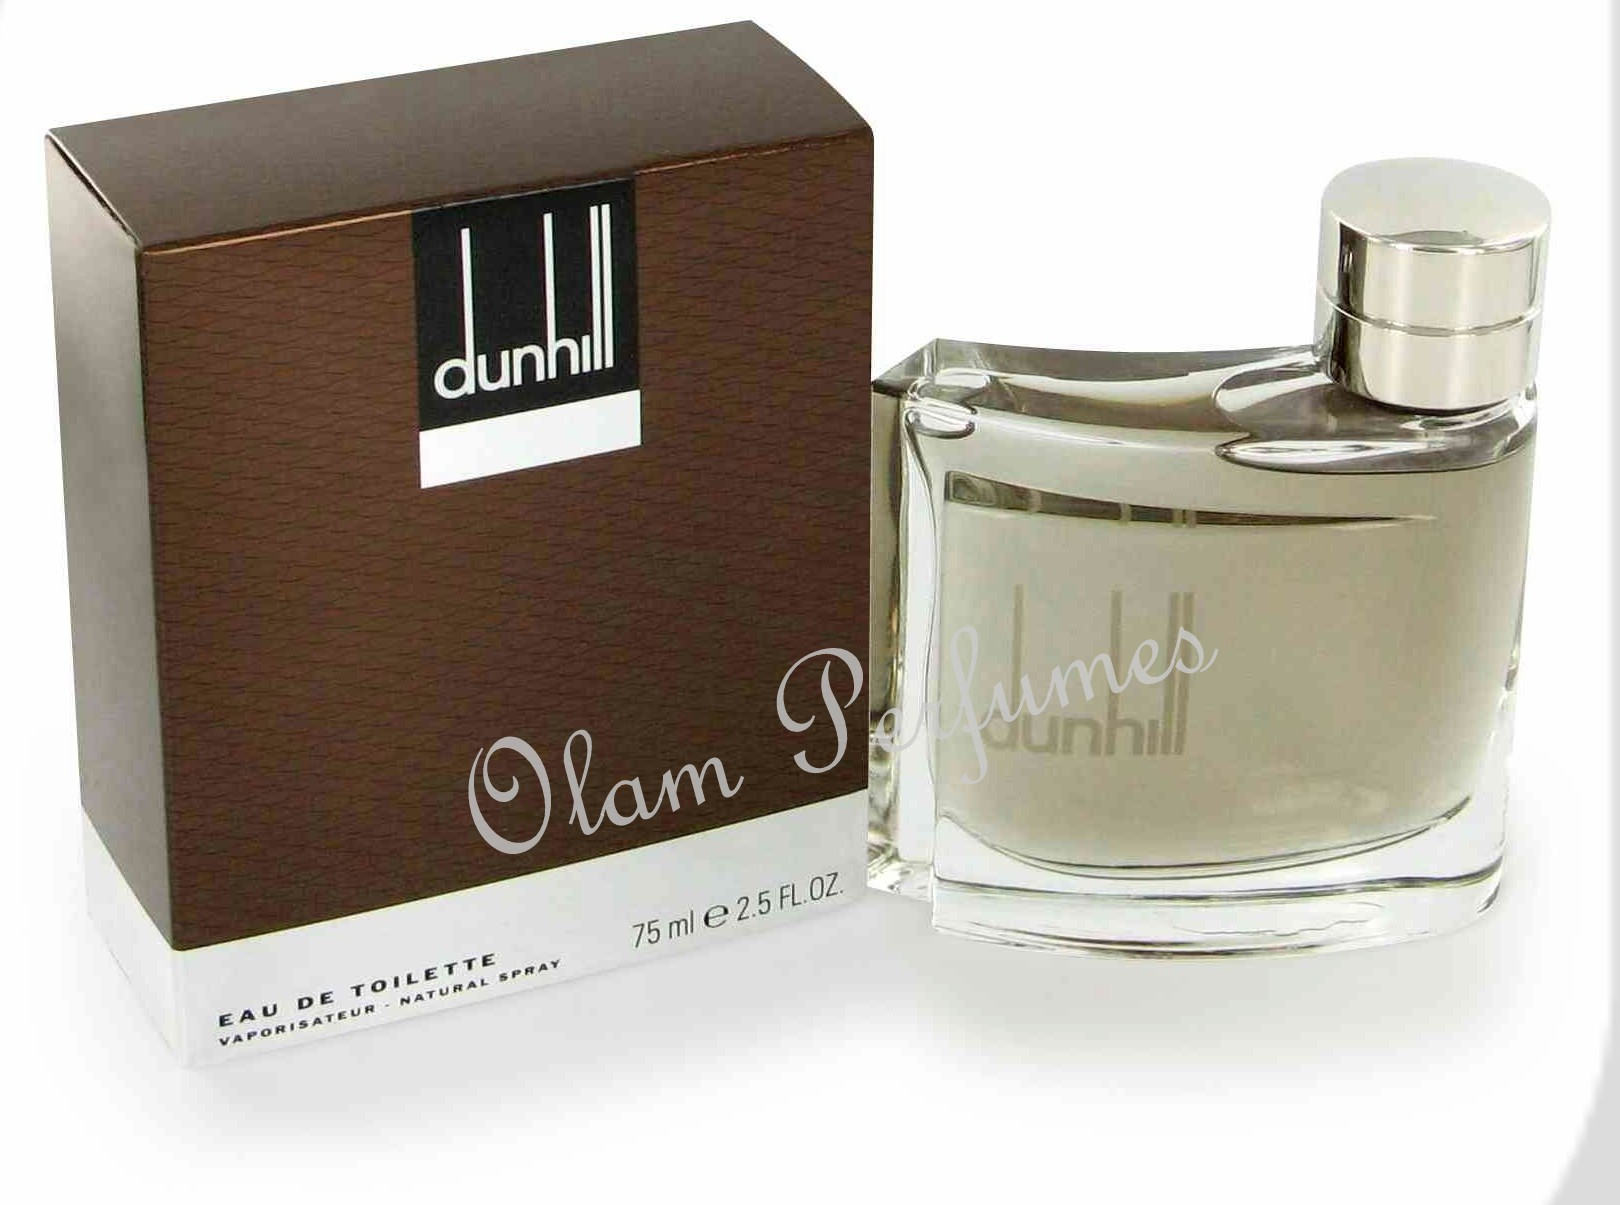 Dunhill Man (Brown) Eau de Toilette Spray 2.5oz 75ml